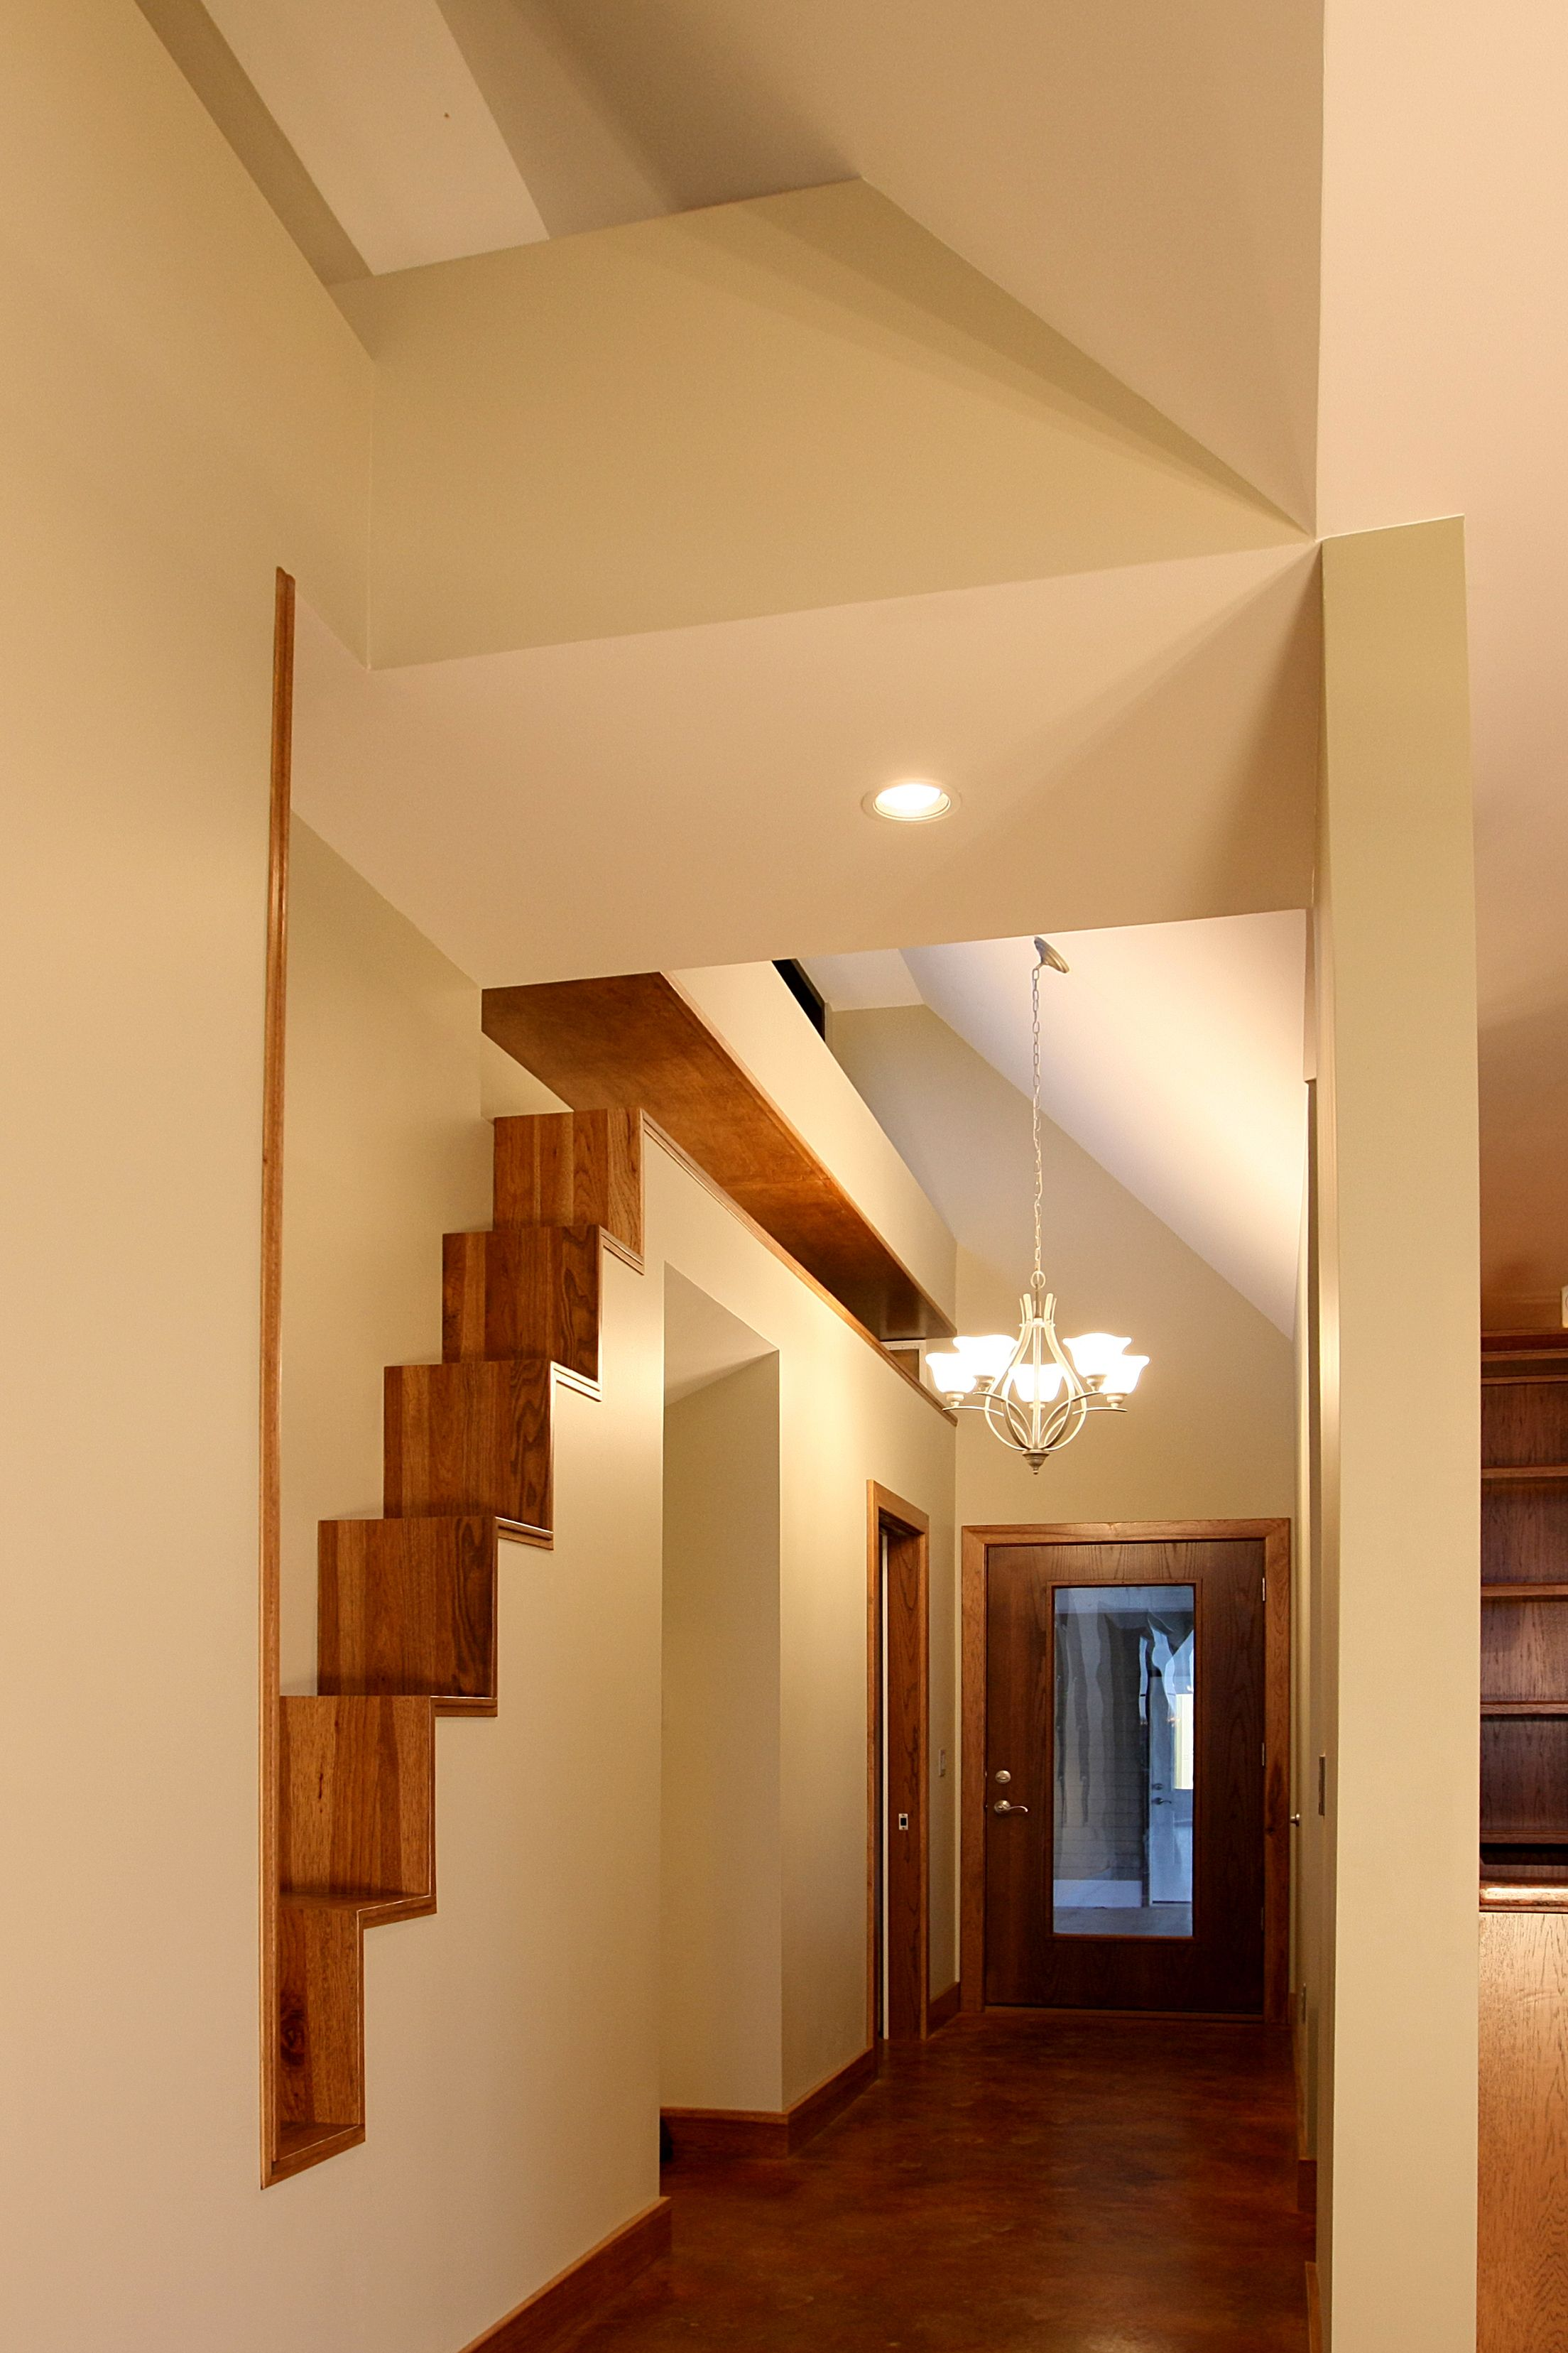 Pin by maryanne /h on Cat Climbs via Stairs/Shelves/Cubes